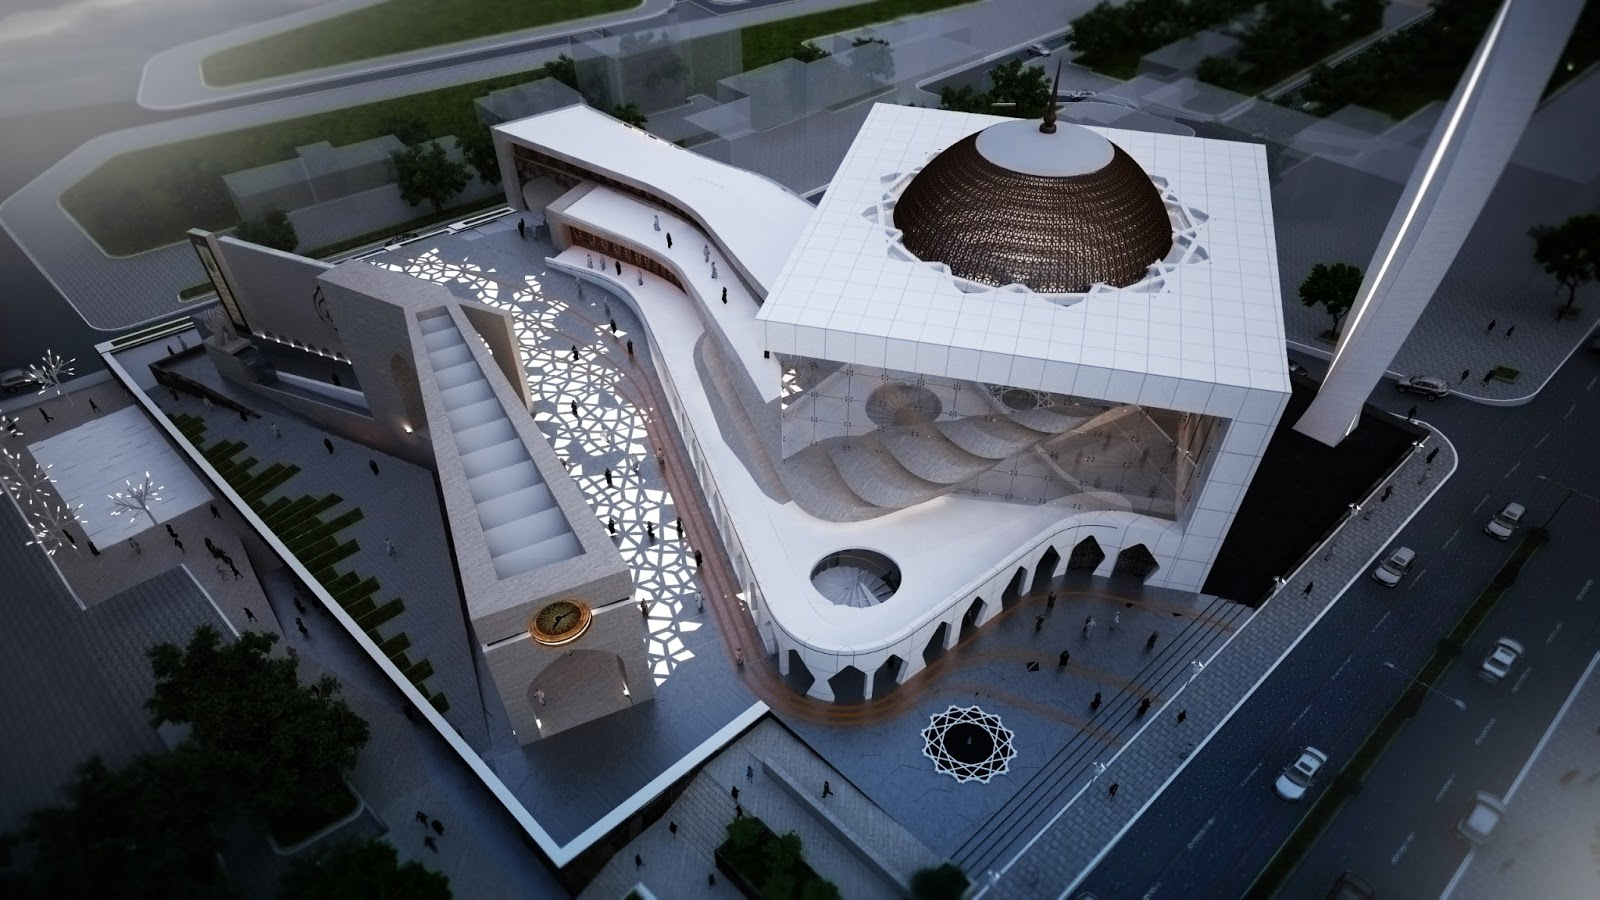 X-plan Studio: COMPETITION -CENTRAL MOSQUE OF PRISHTINA